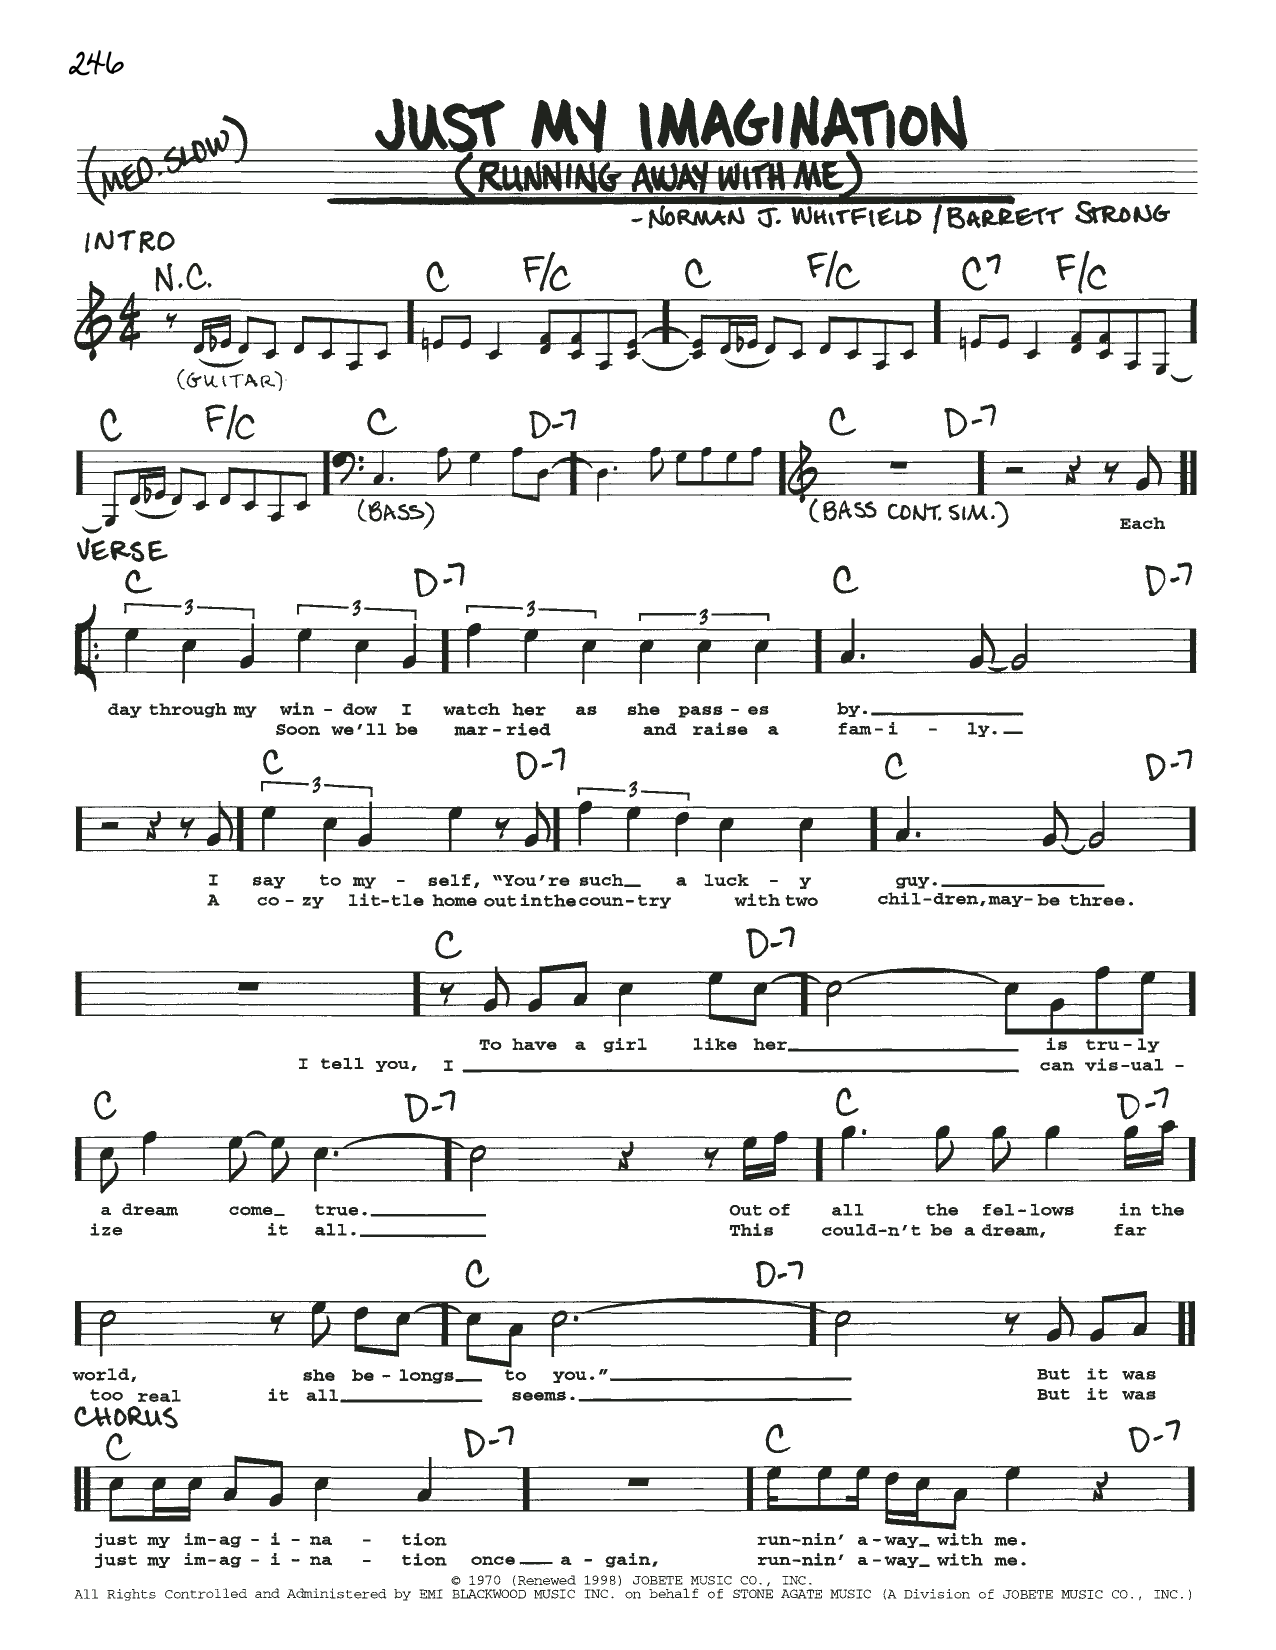 The Temptations Just My Imagination (Running Away With Me) sheet music notes and chords